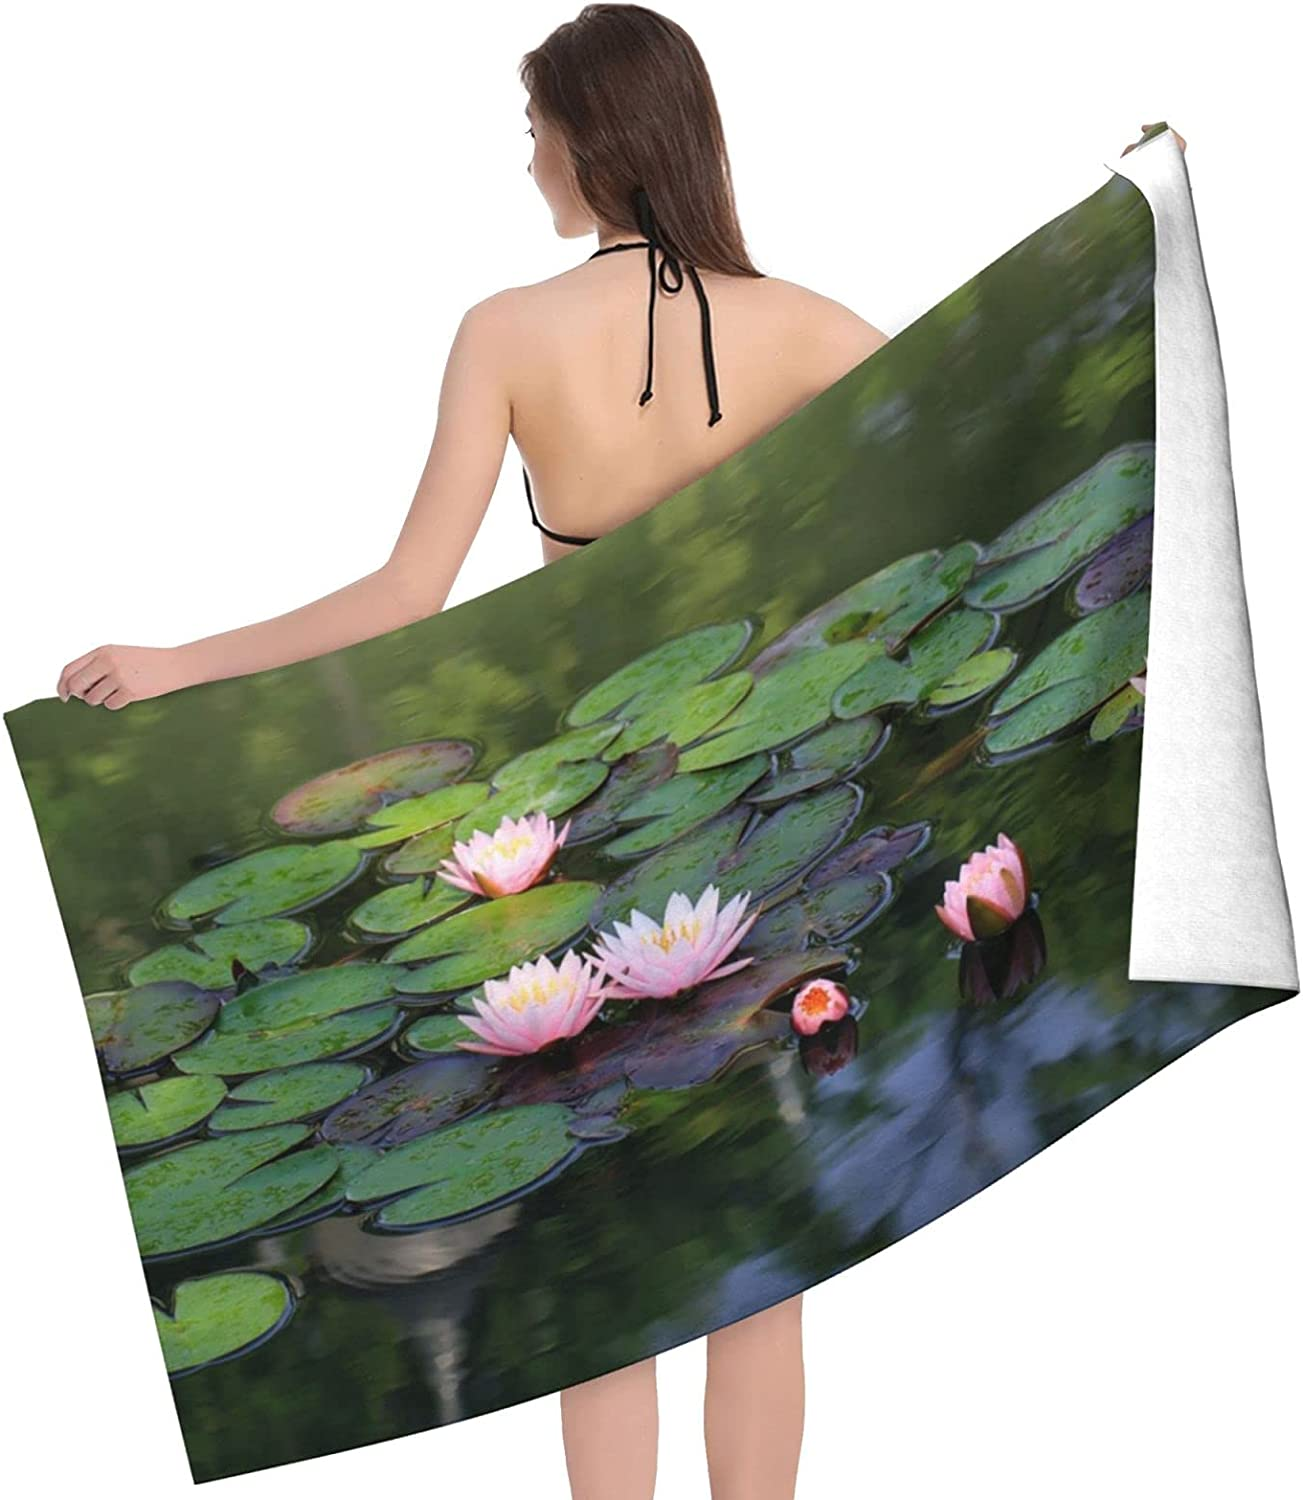 Beautiful Lotus Flower Print Adult - Towel Towels Beach Clearance SALE Limited time Los Angeles Mall Do